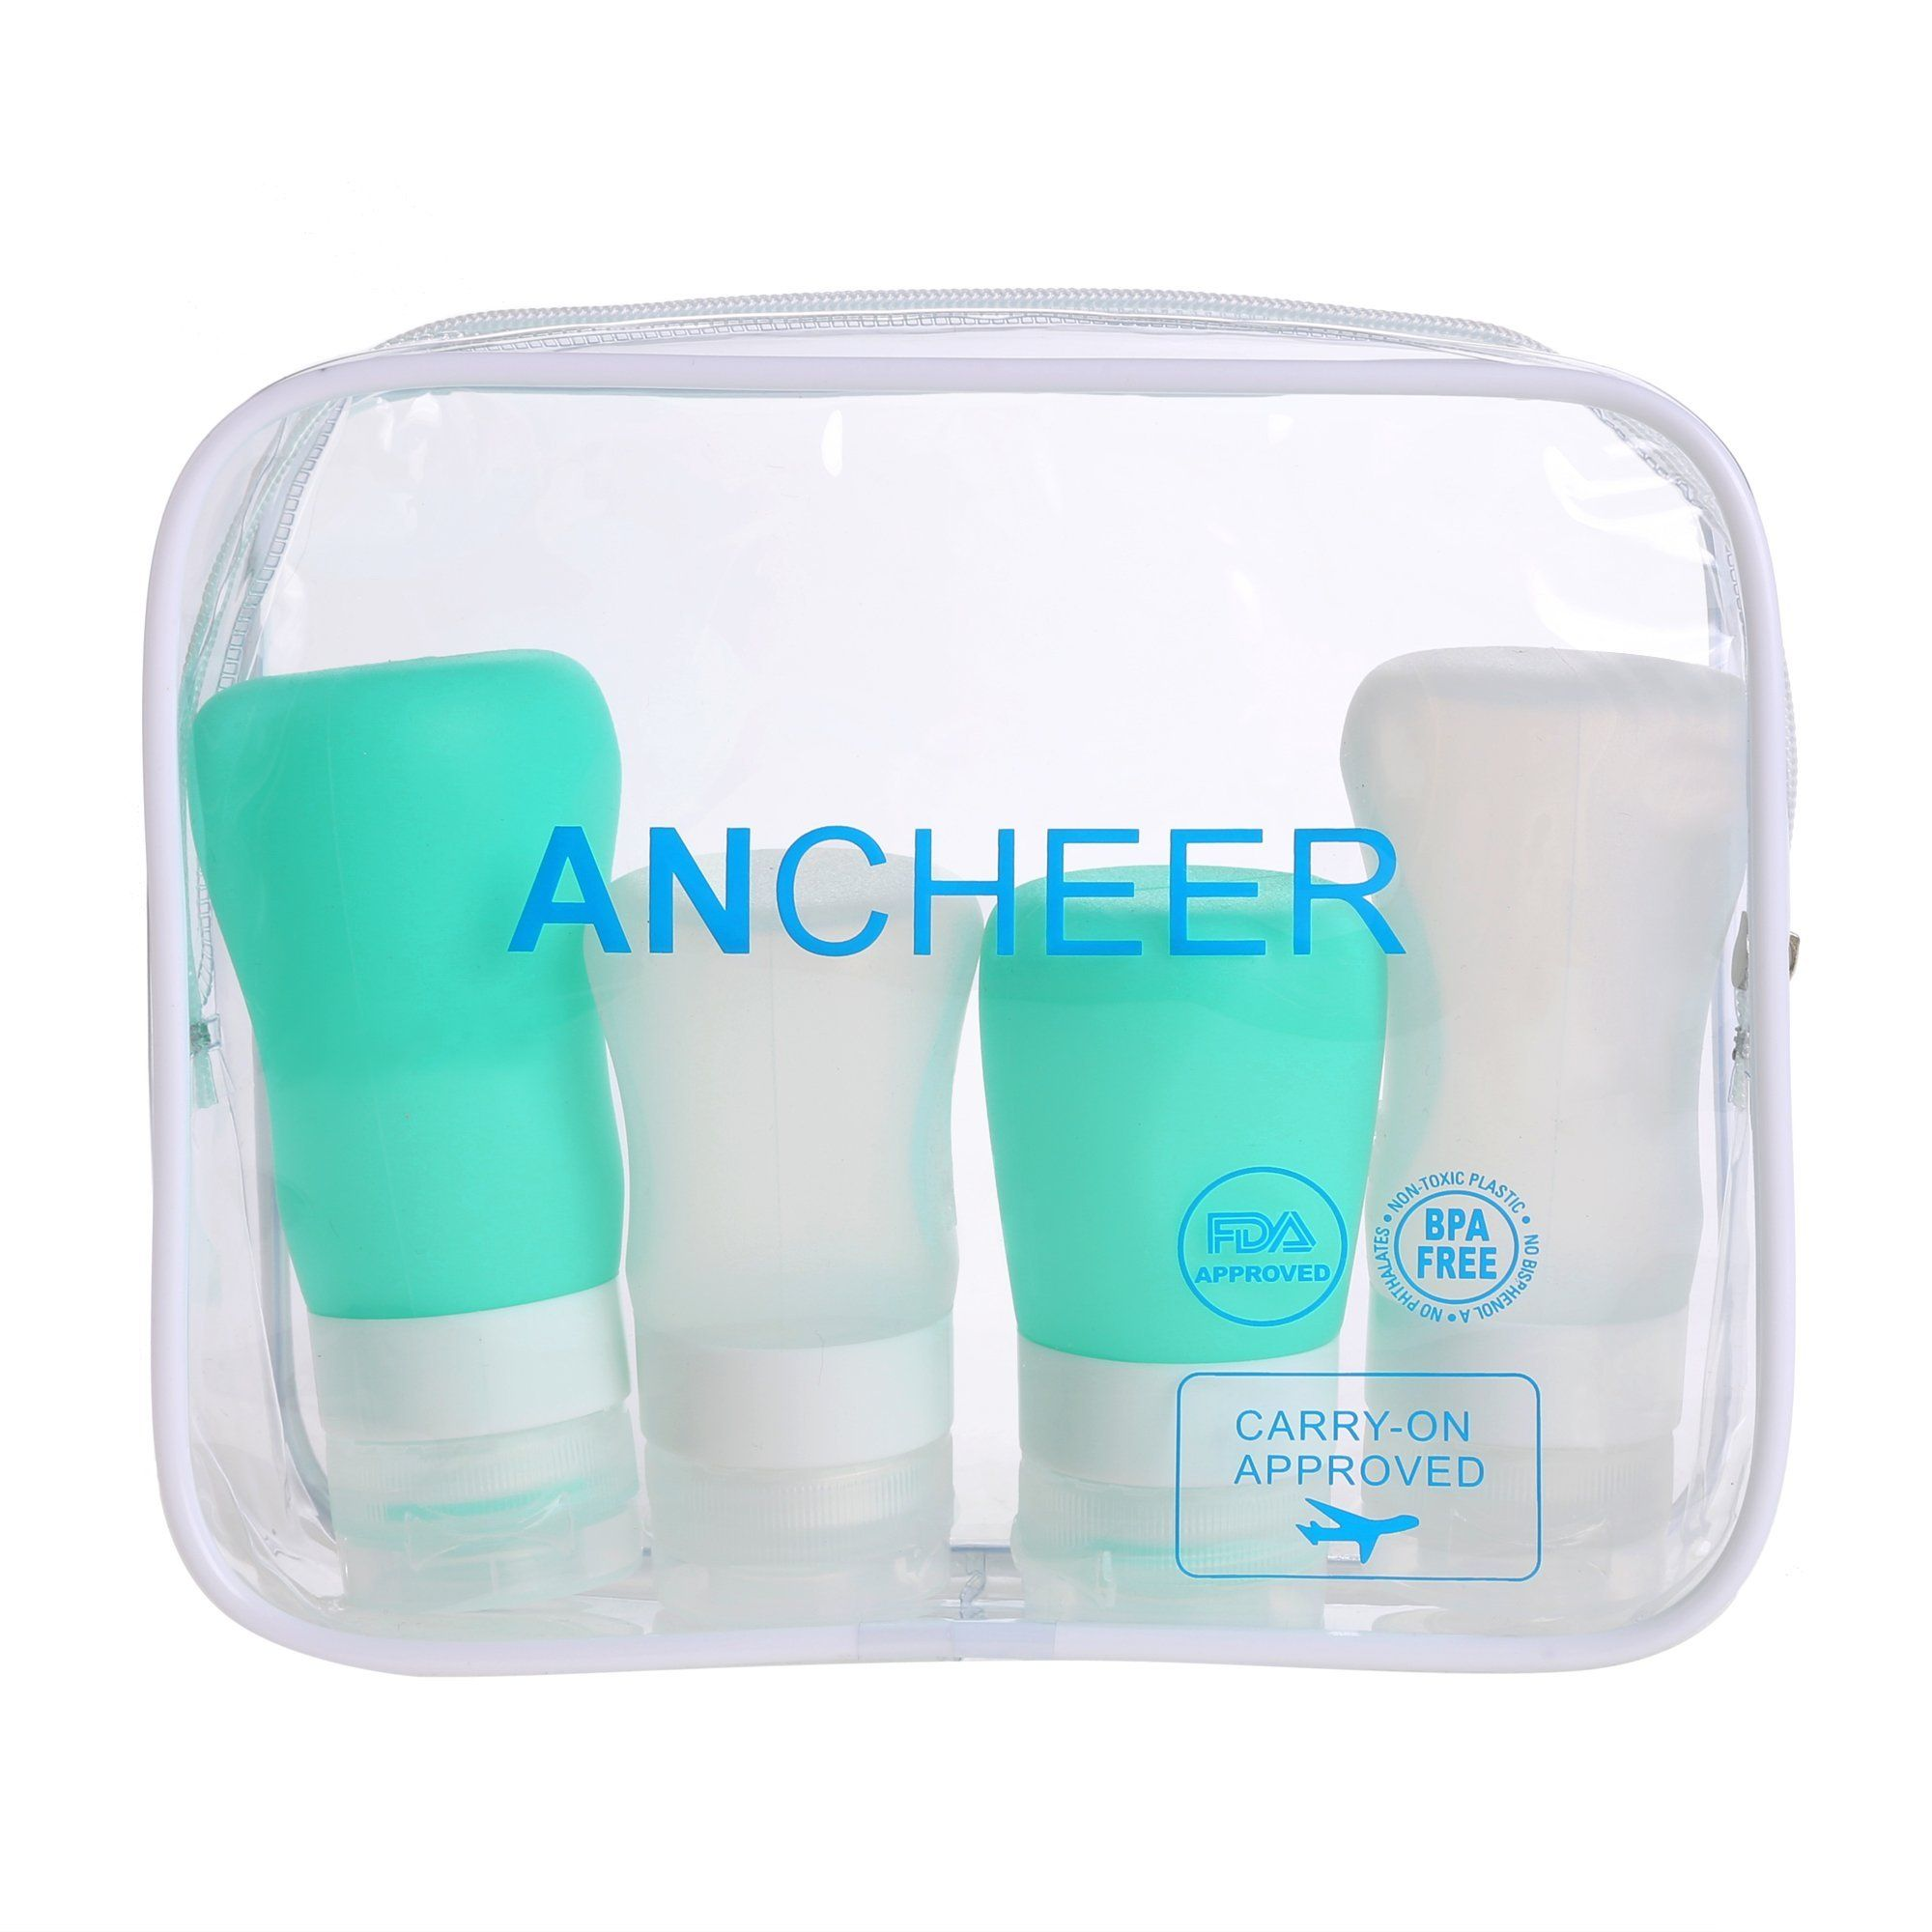 Ancheer Travel Bottle Set -Pack of 4 Leak Proof Silicone Containers in a Portable TSA Approved Toiletry Bag. Food Grade BPA Free Silicone: Designed with safety first and convenience a close second. Our silicone travel bottles are made of FDA approved and 101% BPA free food grade silicone, making it safe for other liquids like sauce, salad dressing or even baby fd. LEAK PROOF SILICONE: Each 100% BPA Free silicone bottle has been created not to leak when travelling. Large size bottle…